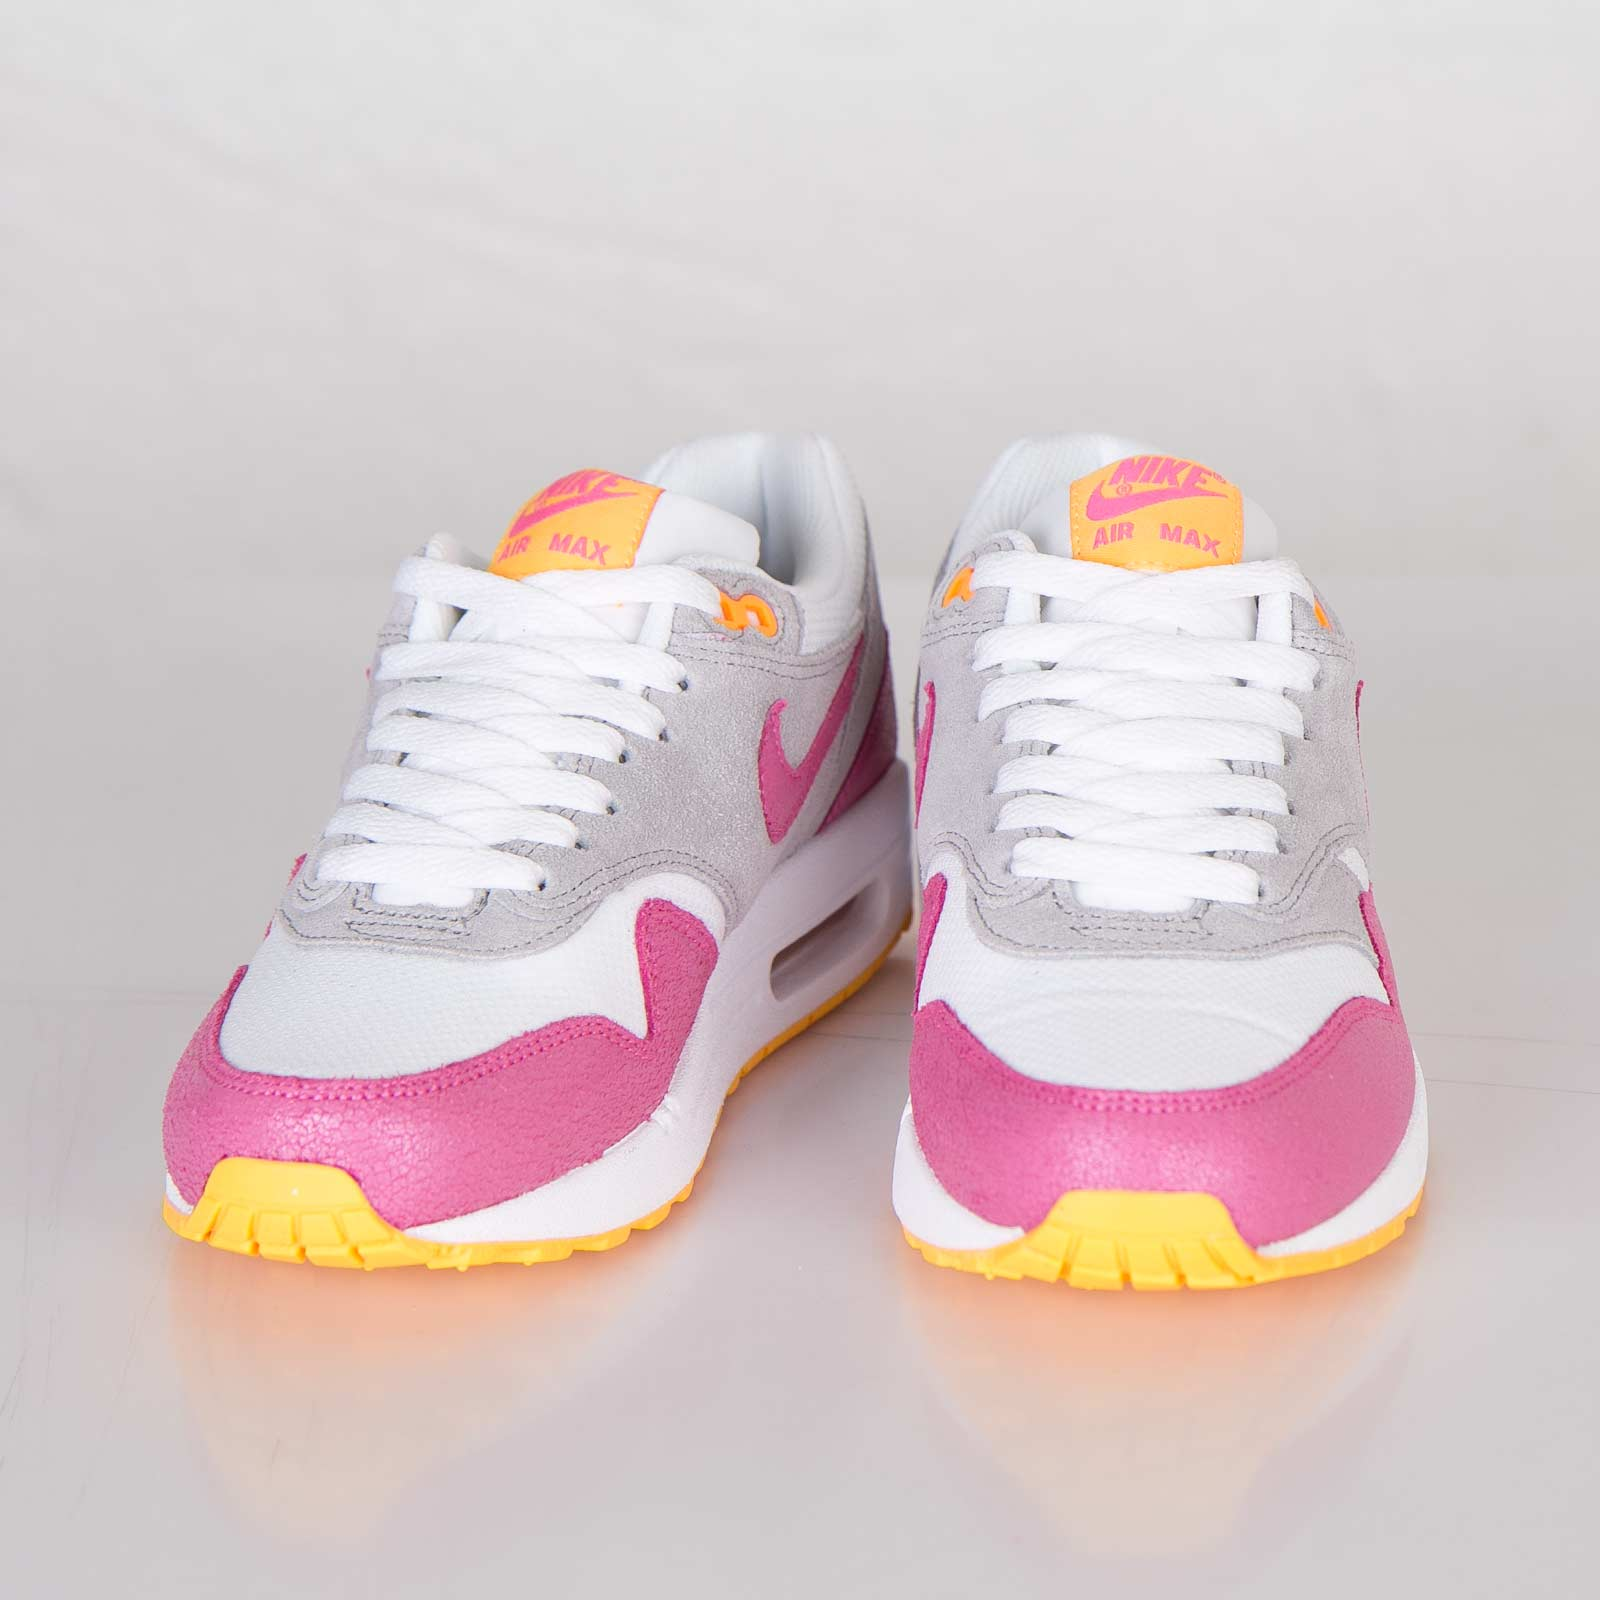 separation shoes 9f932 79d15 Nike Wmns Air Max 1 Essential - 599820-107 - Sneakersnstuff   sneakers    streetwear online since 1999